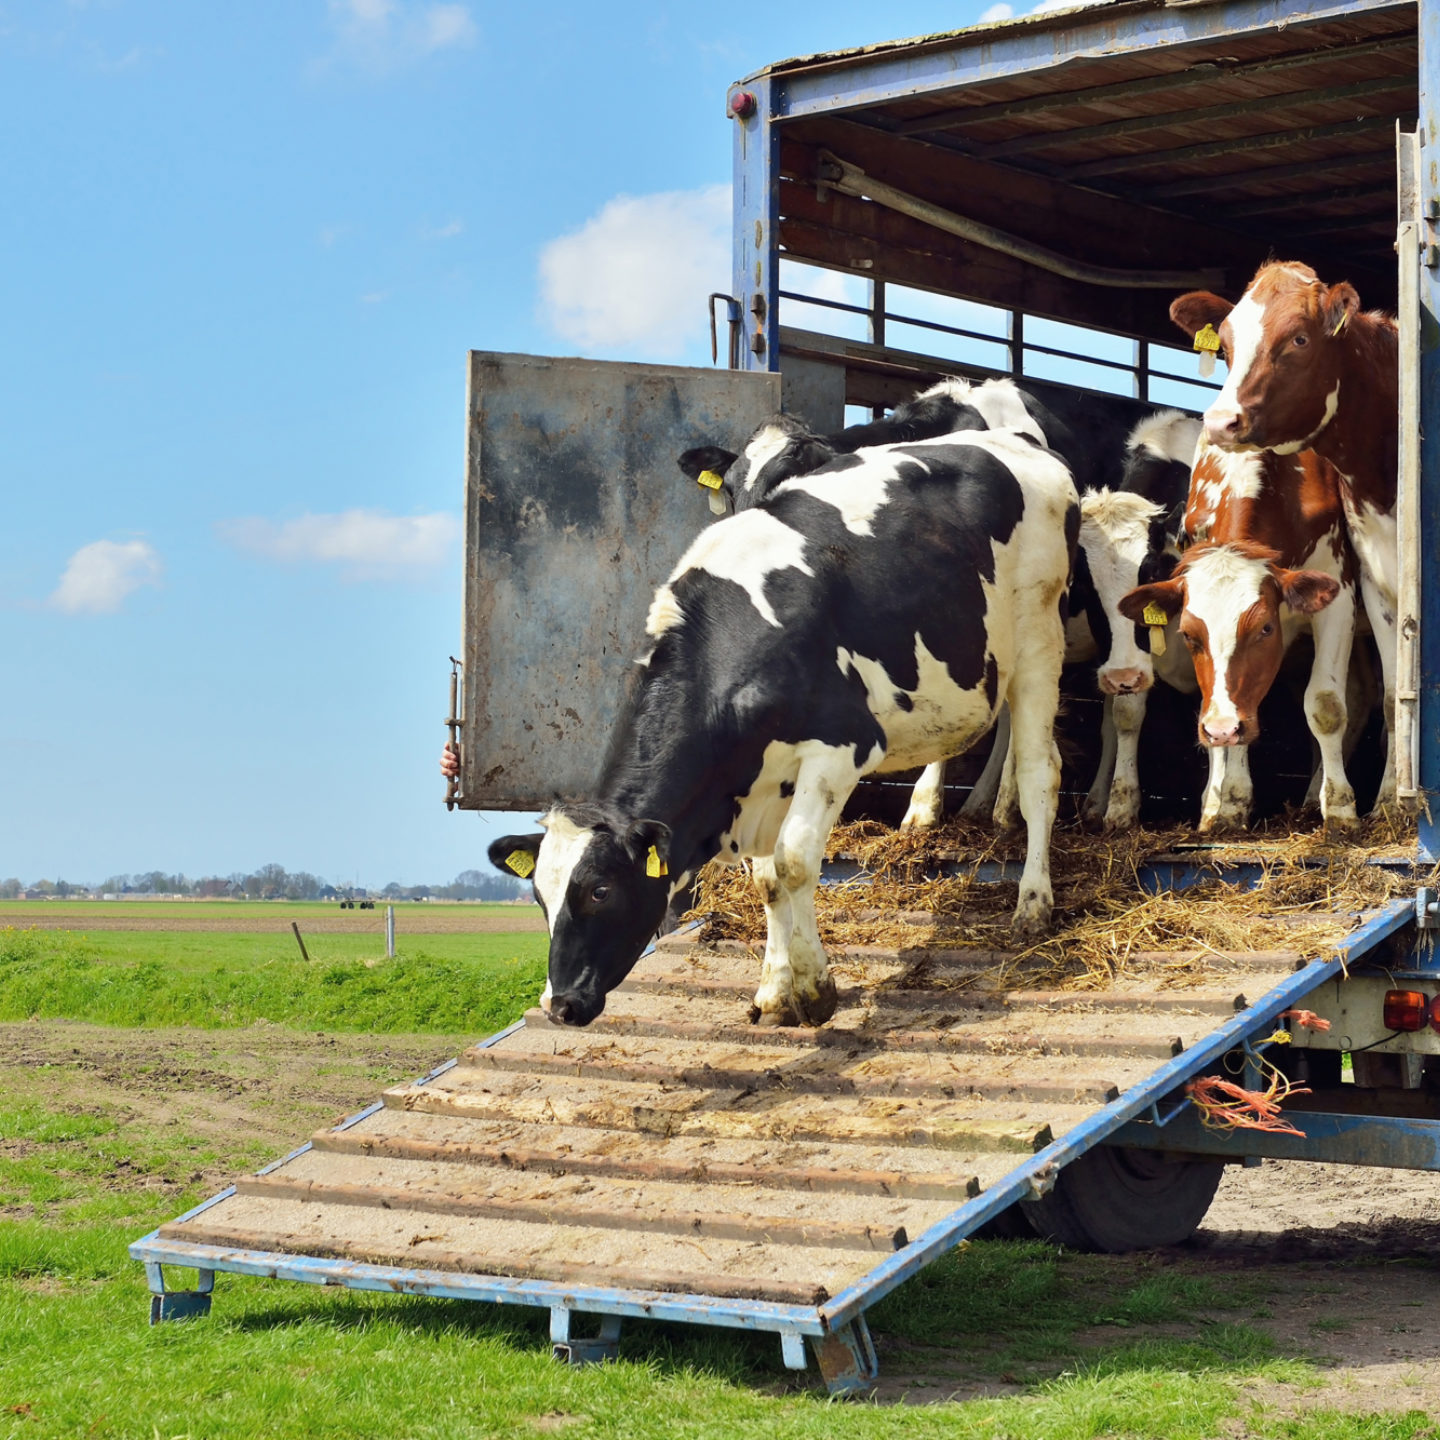 Cows being transported on trailer